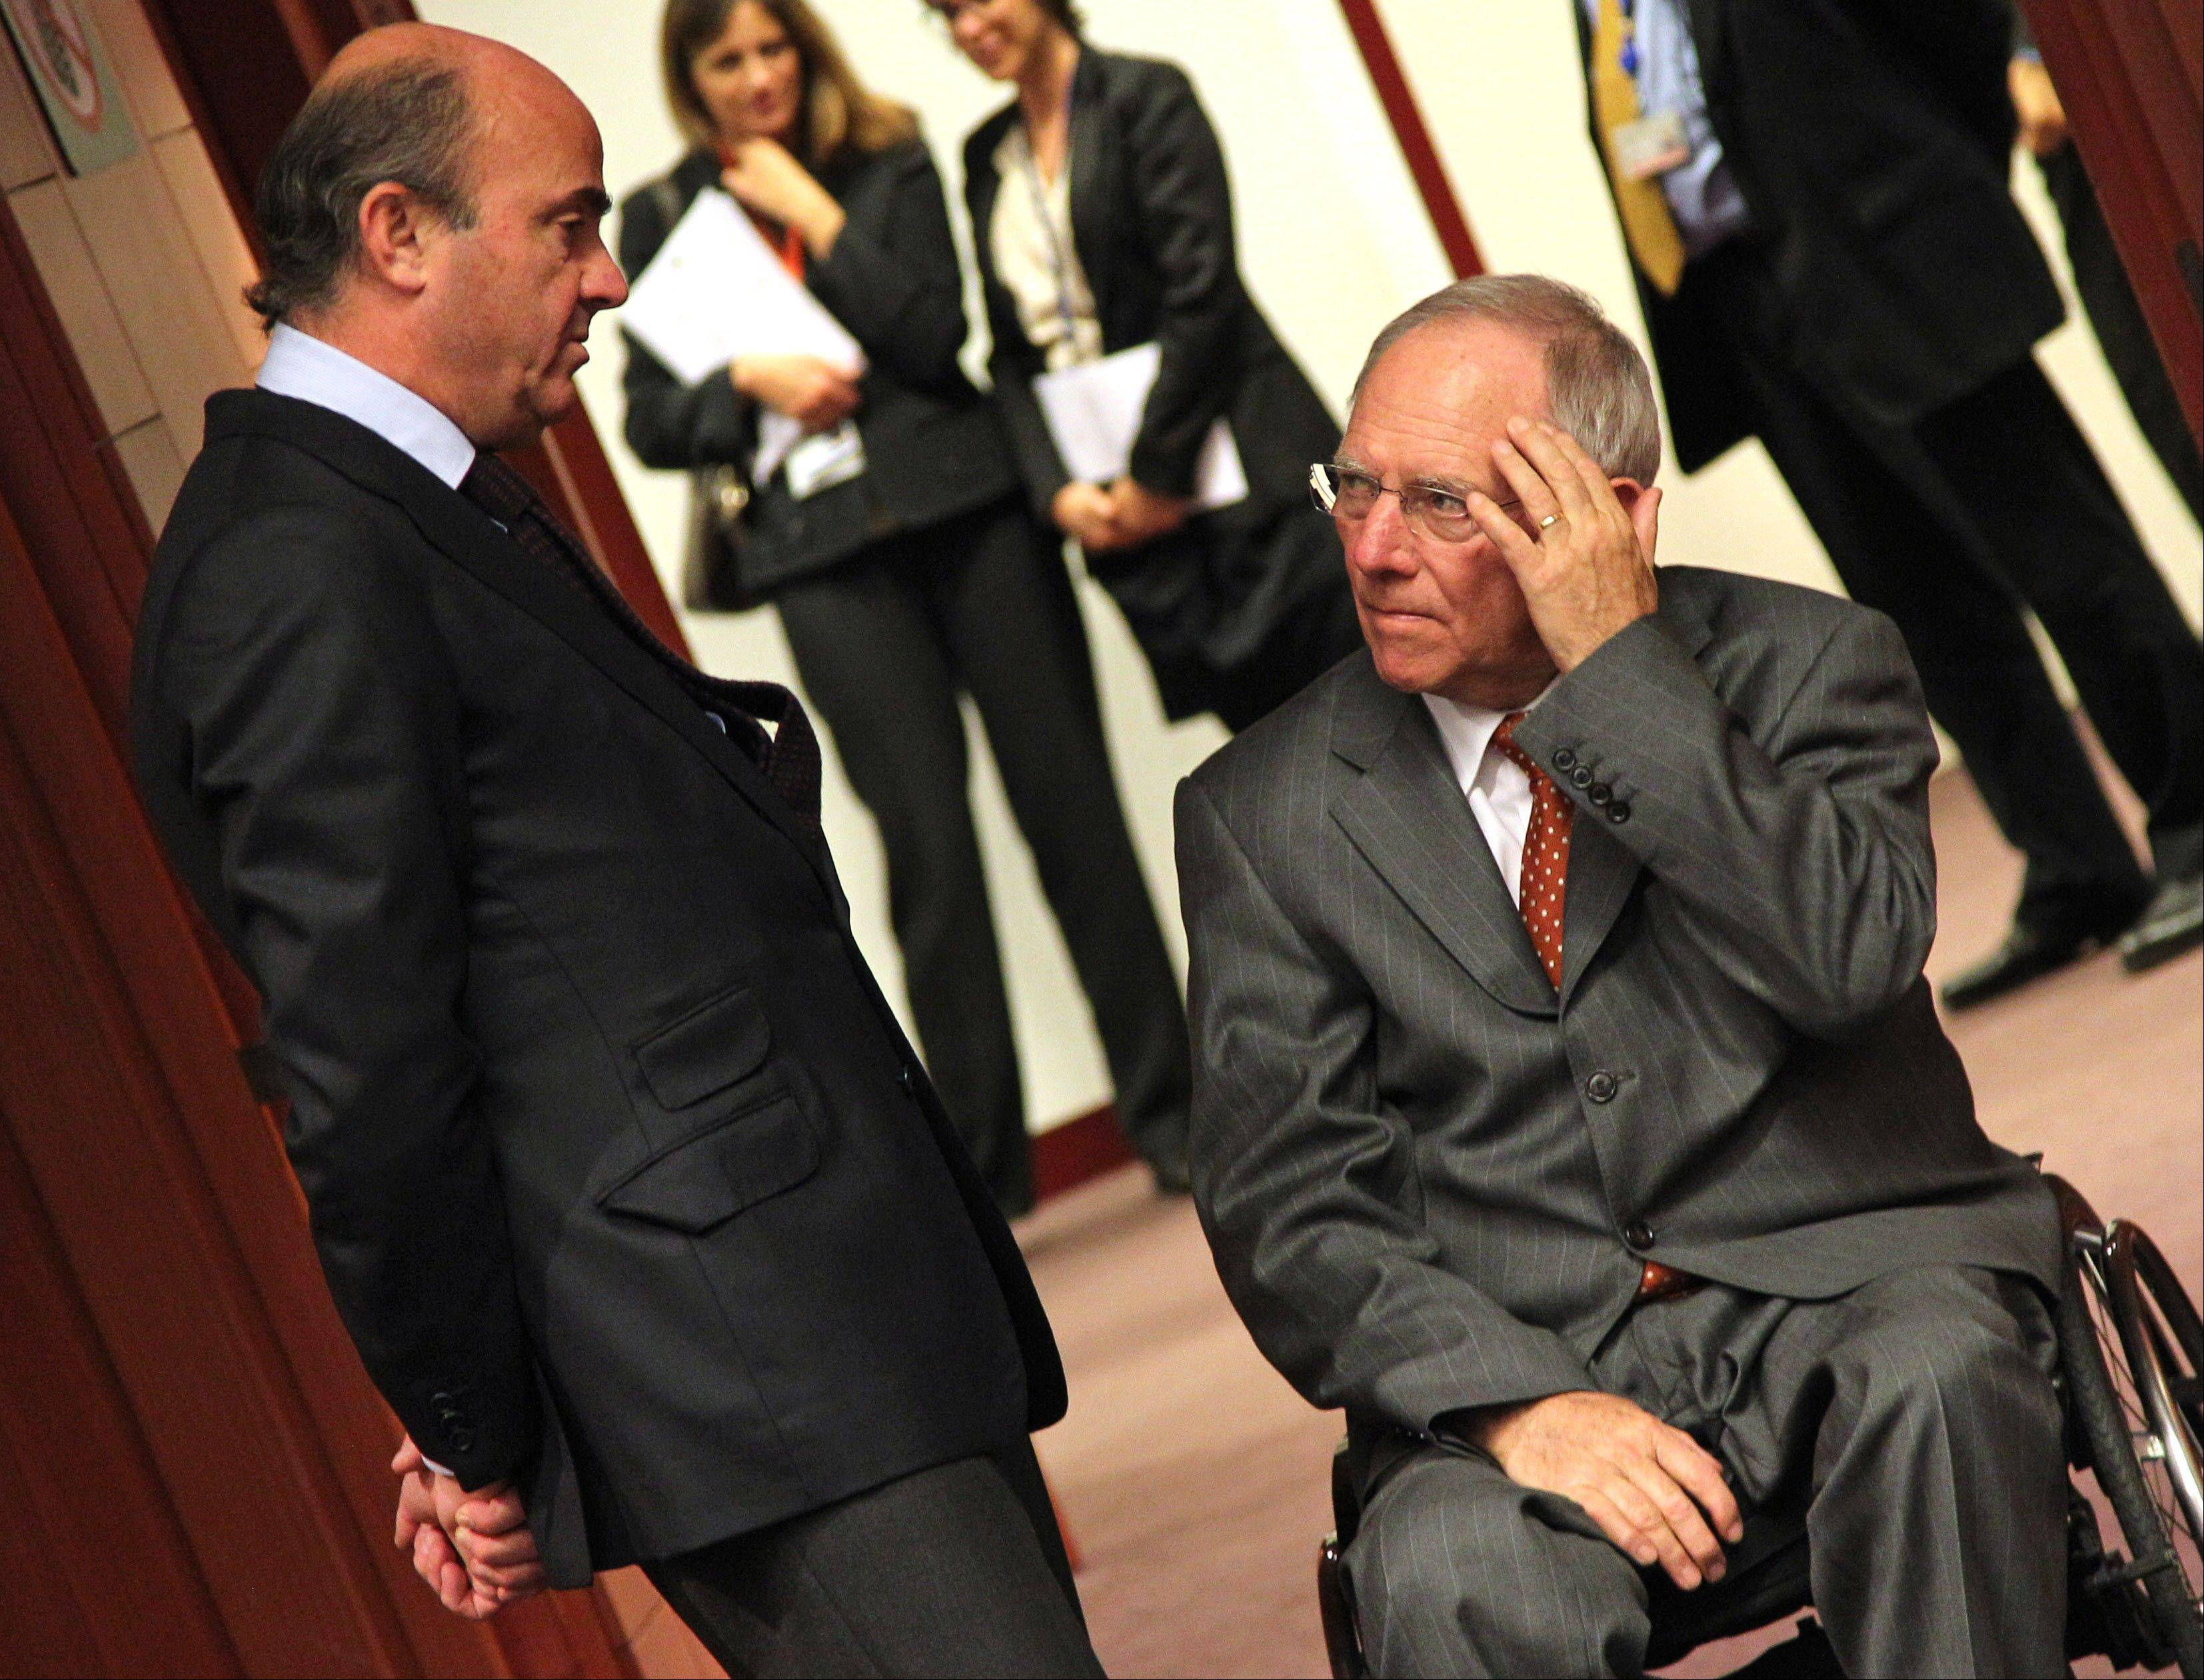 Spanish Economy Minister Luis de Guindos Jurado, left, talks with German Finance Minister Wolfgang Schaeuble, during the Eurogroup meeting, at the European Council building in Brussels, Monday.